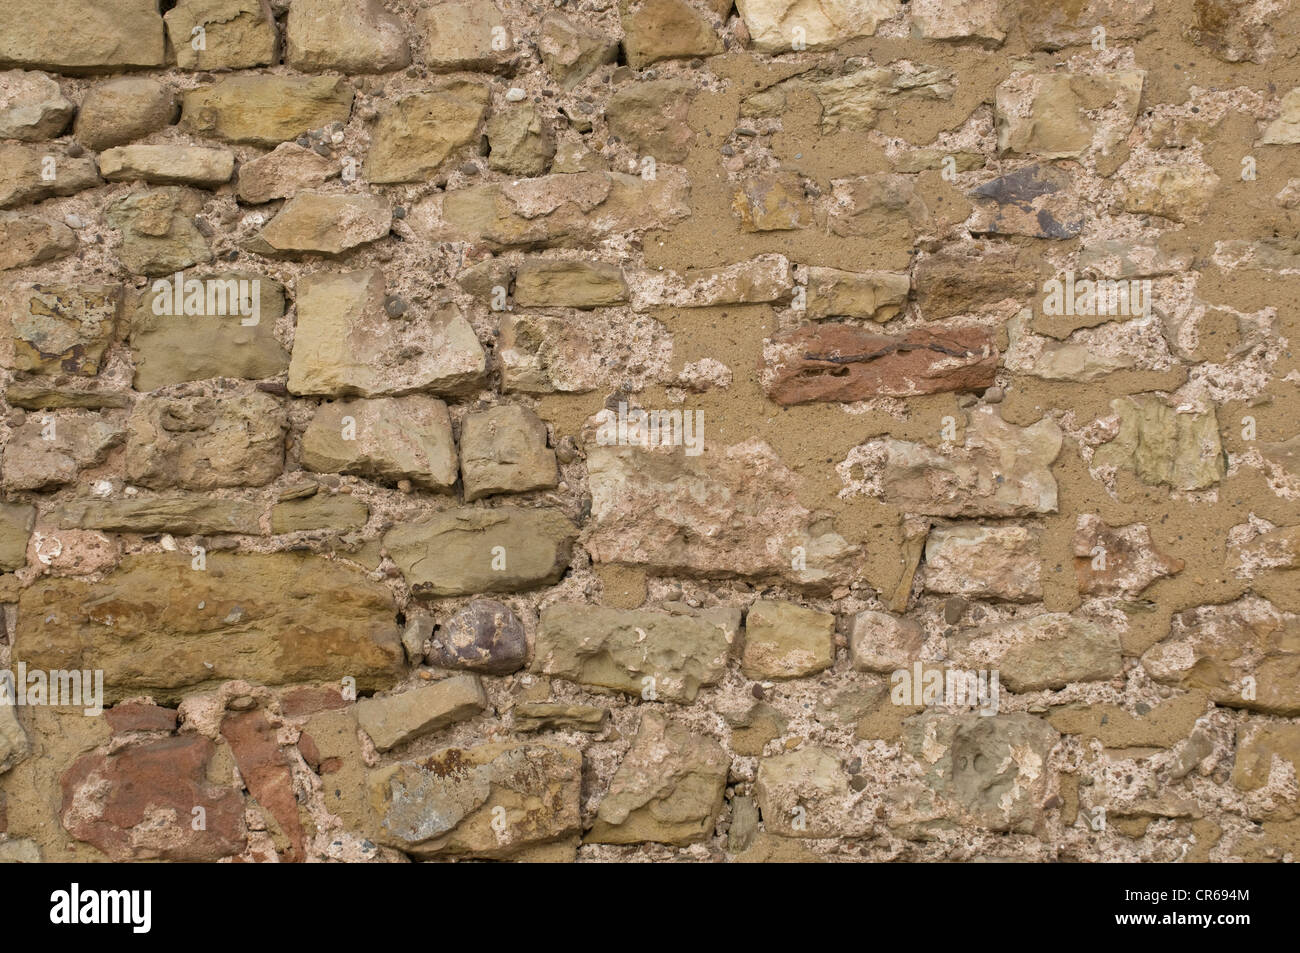 Mended natural stone wall - Stock Image